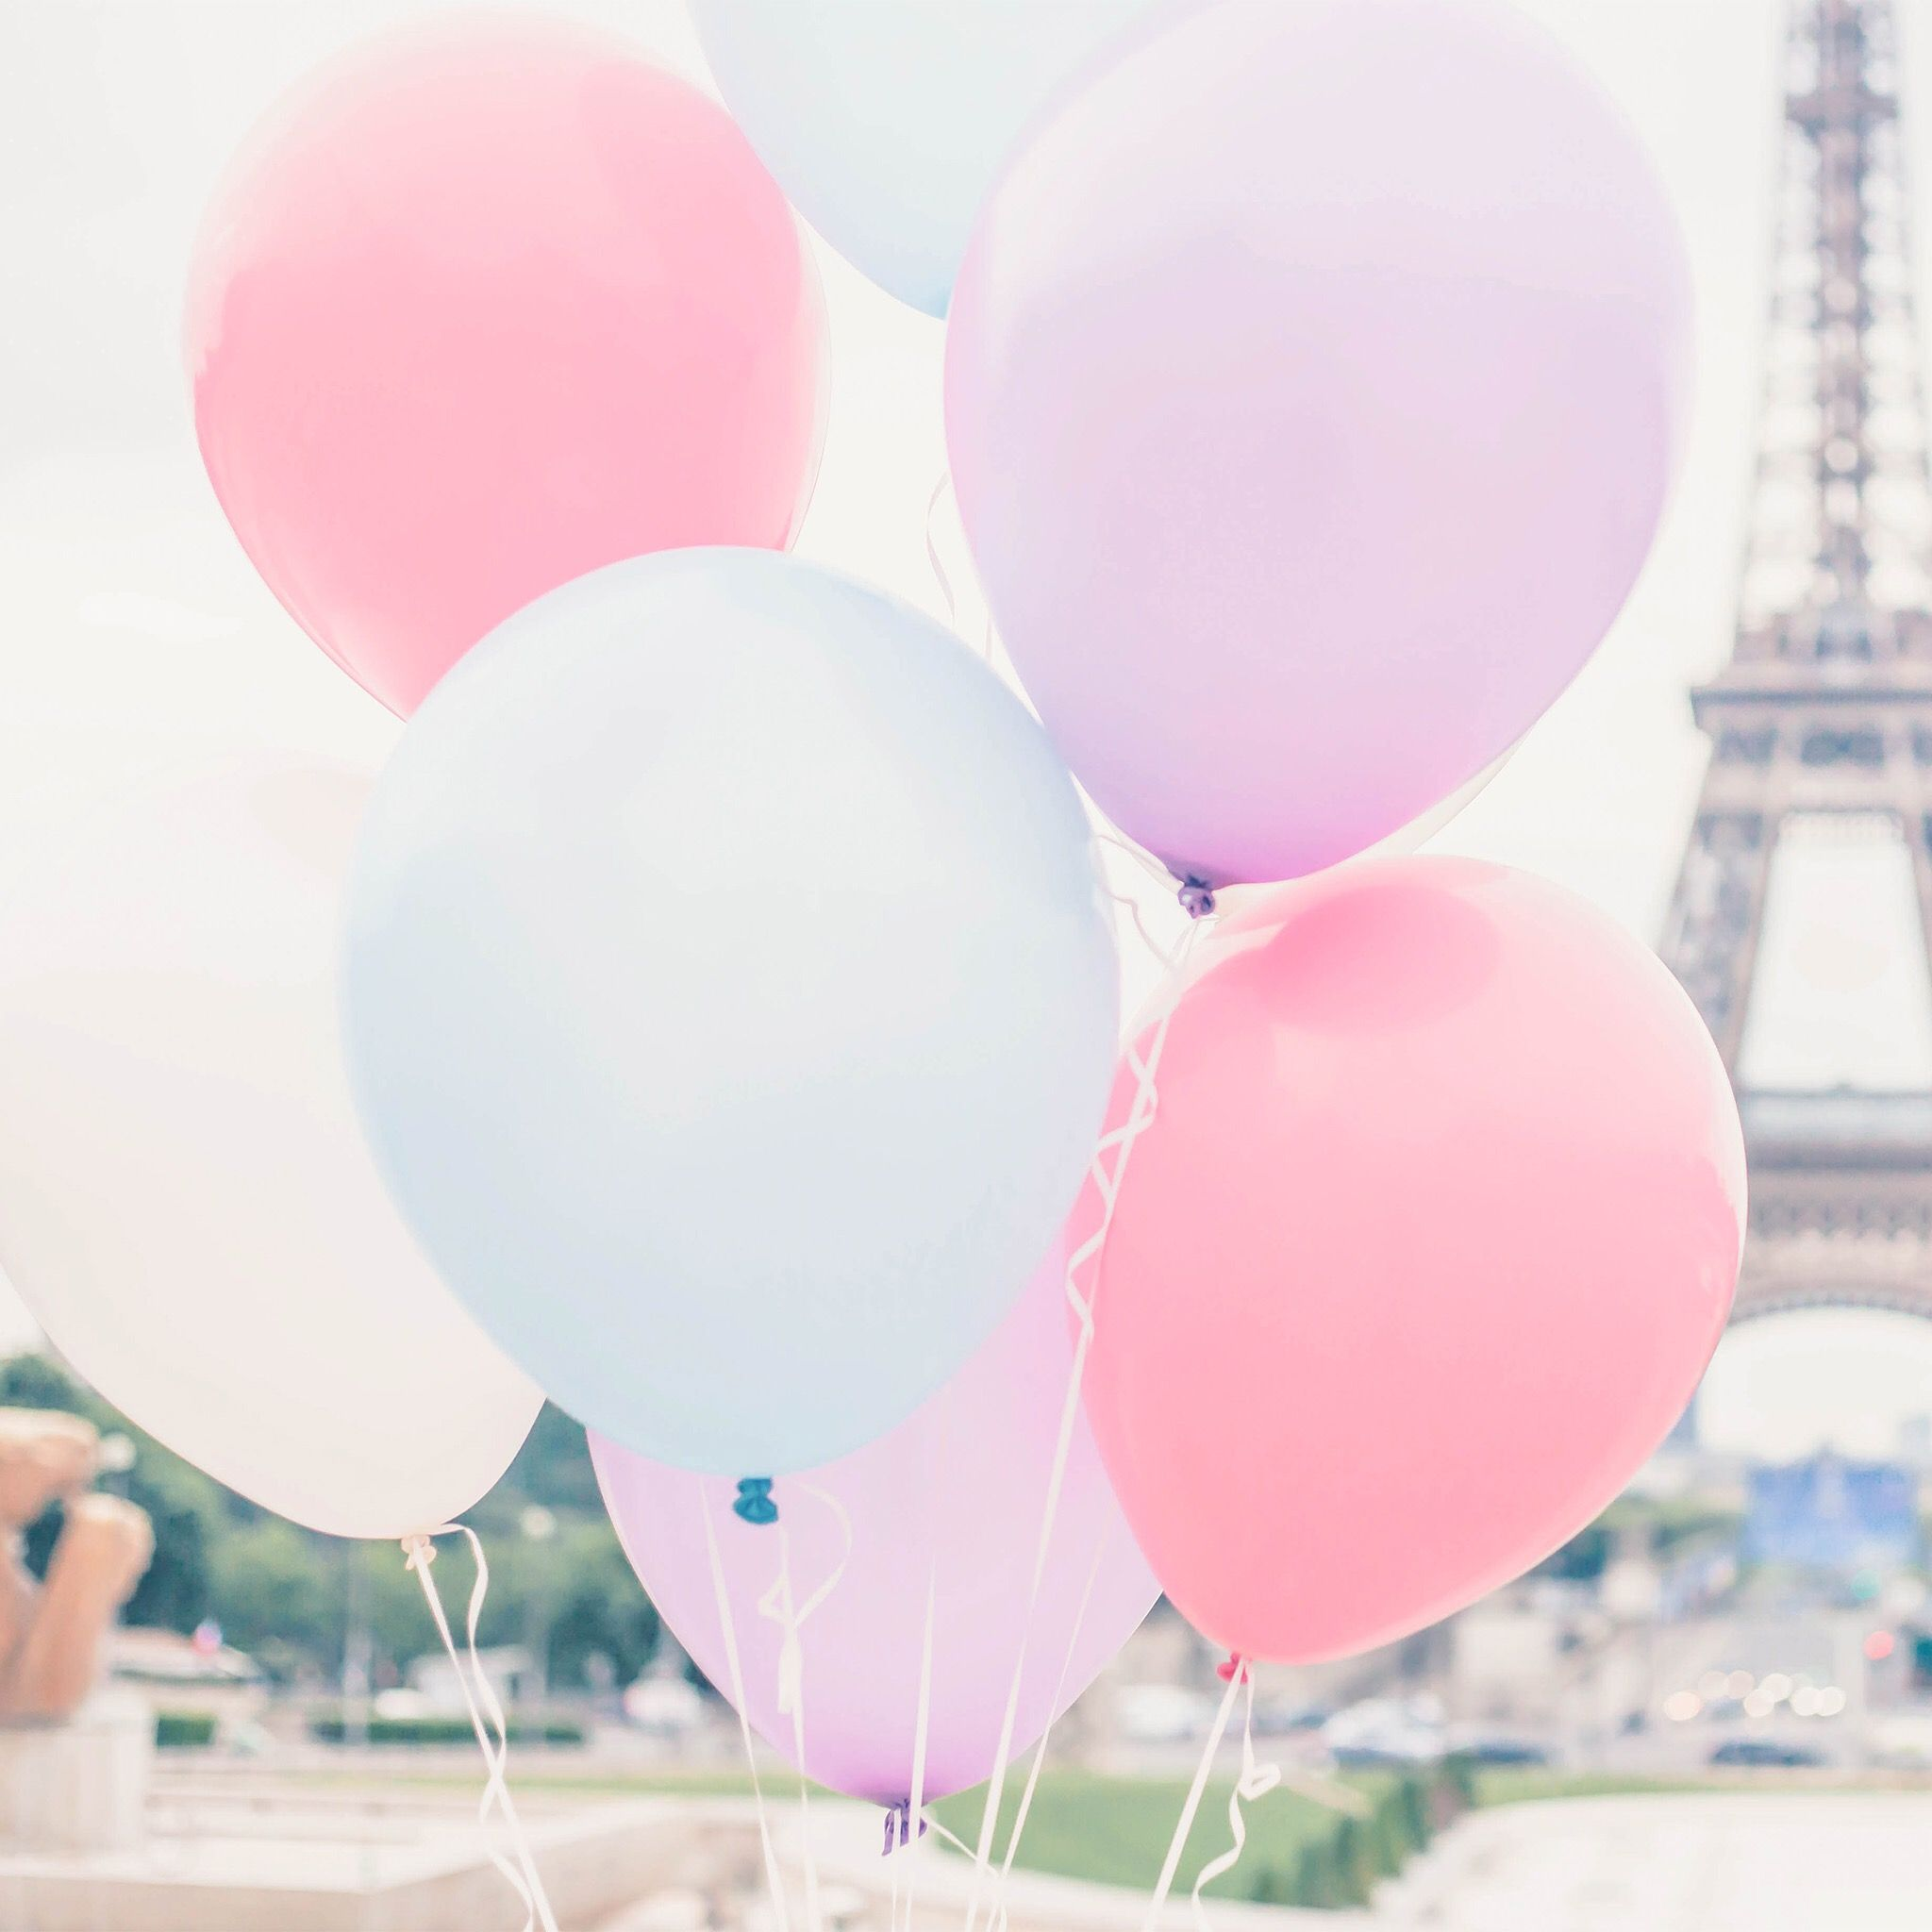 Pastel Balloons In Front Of The Eiffel Tower Is Admittedly On My Photography Bucket List